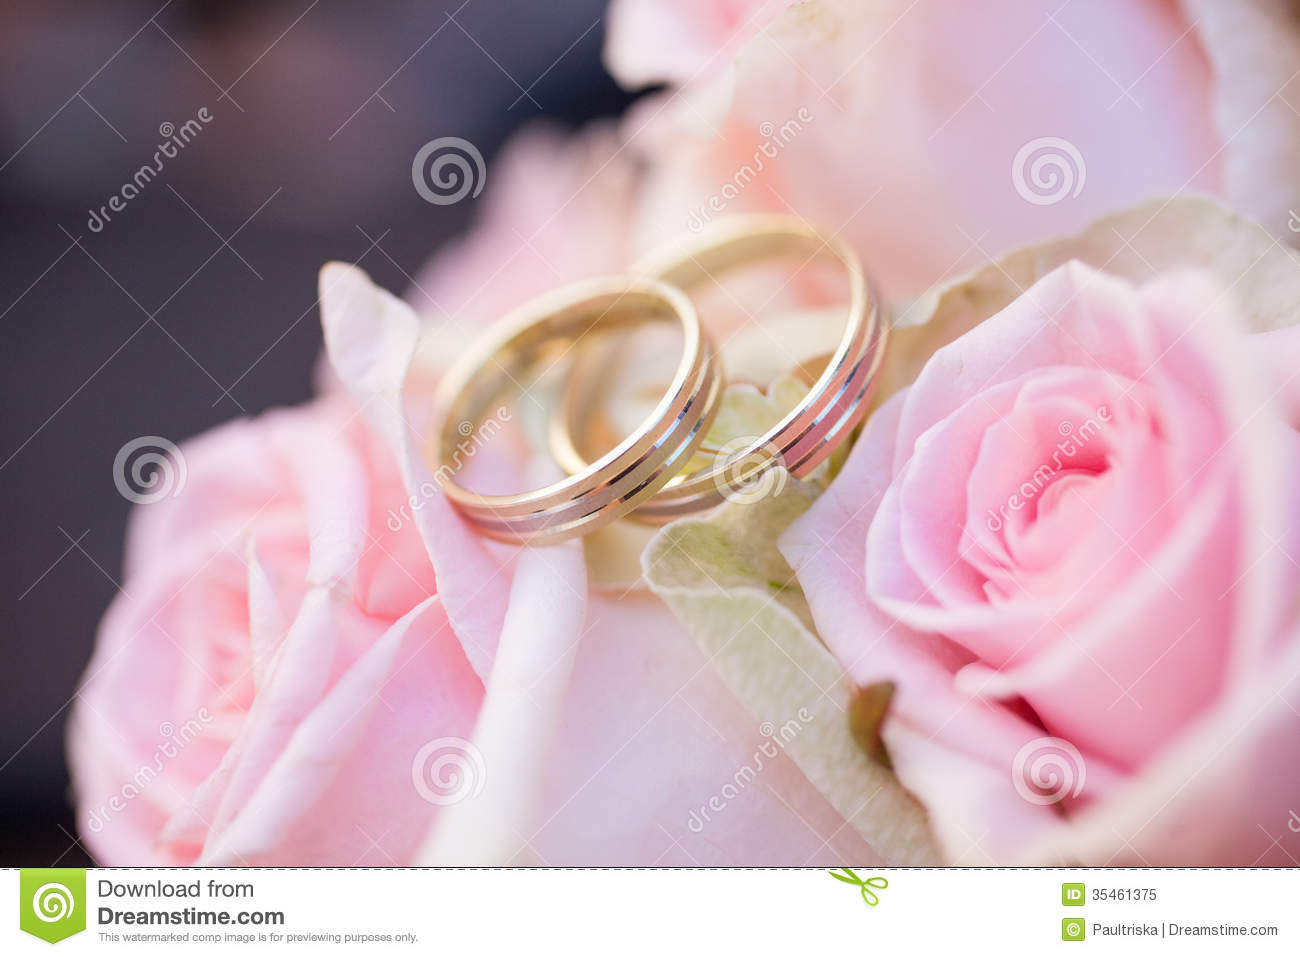 Wedding rings and roses stock image. Image of gold, event - 35461375